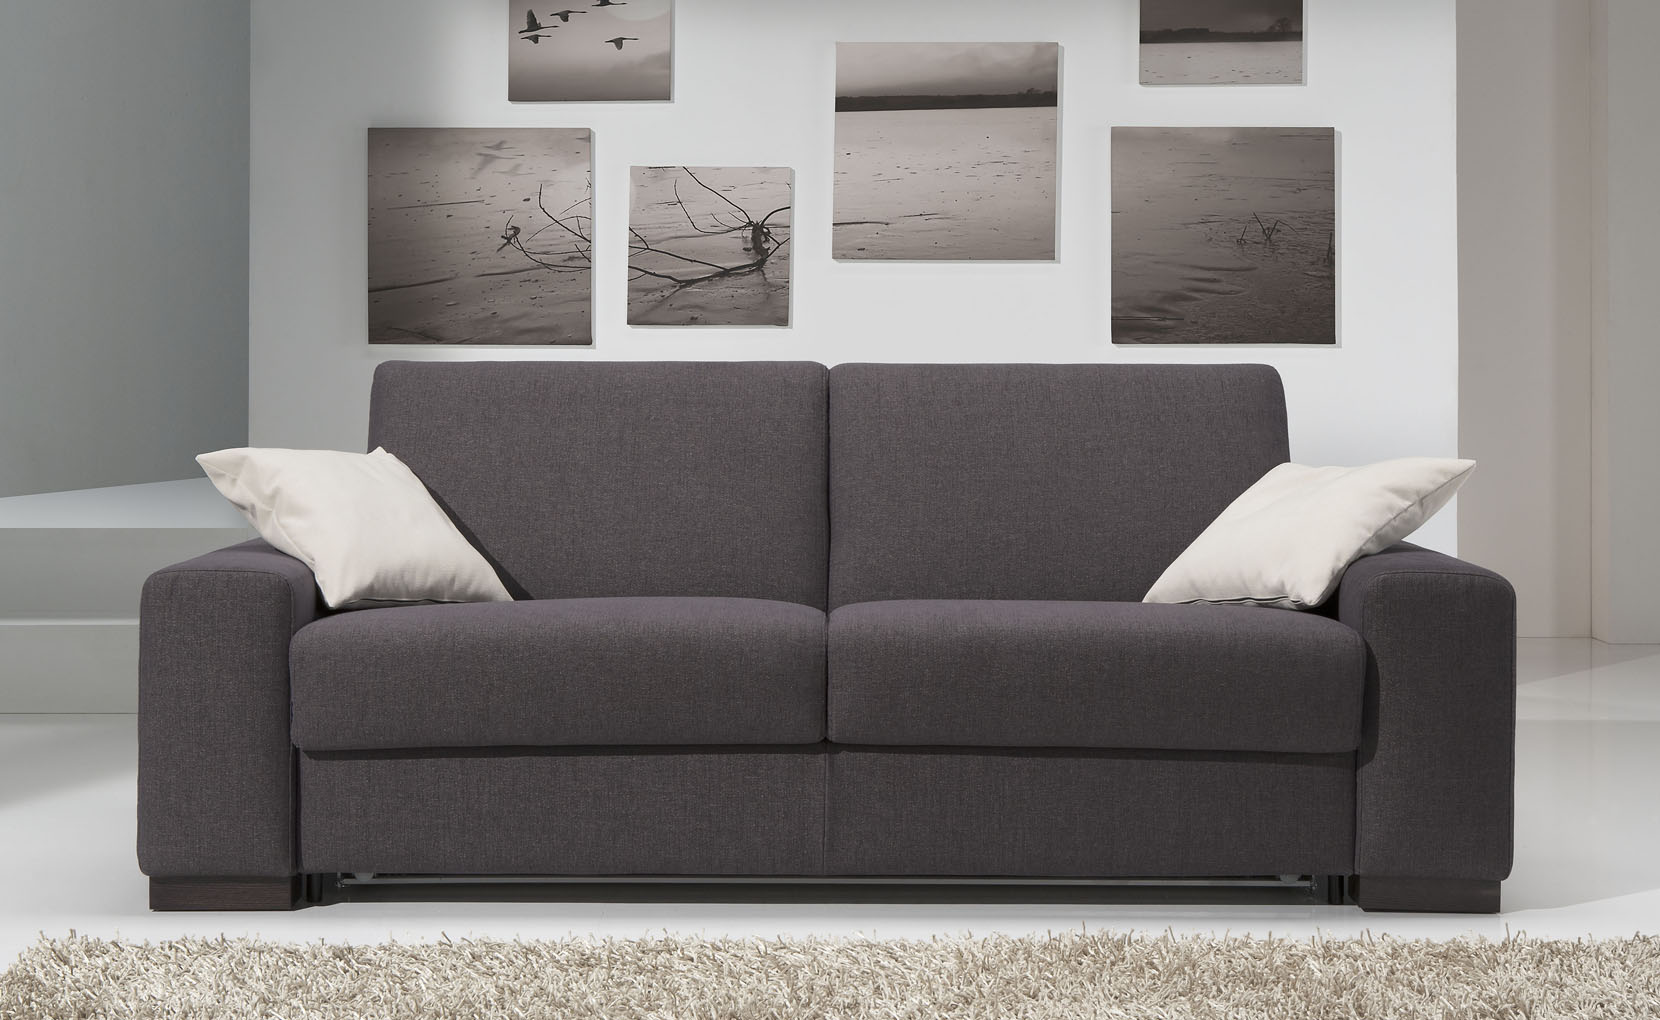 ego italiano sofa available at the ultimate living company free shipping. Black Bedroom Furniture Sets. Home Design Ideas